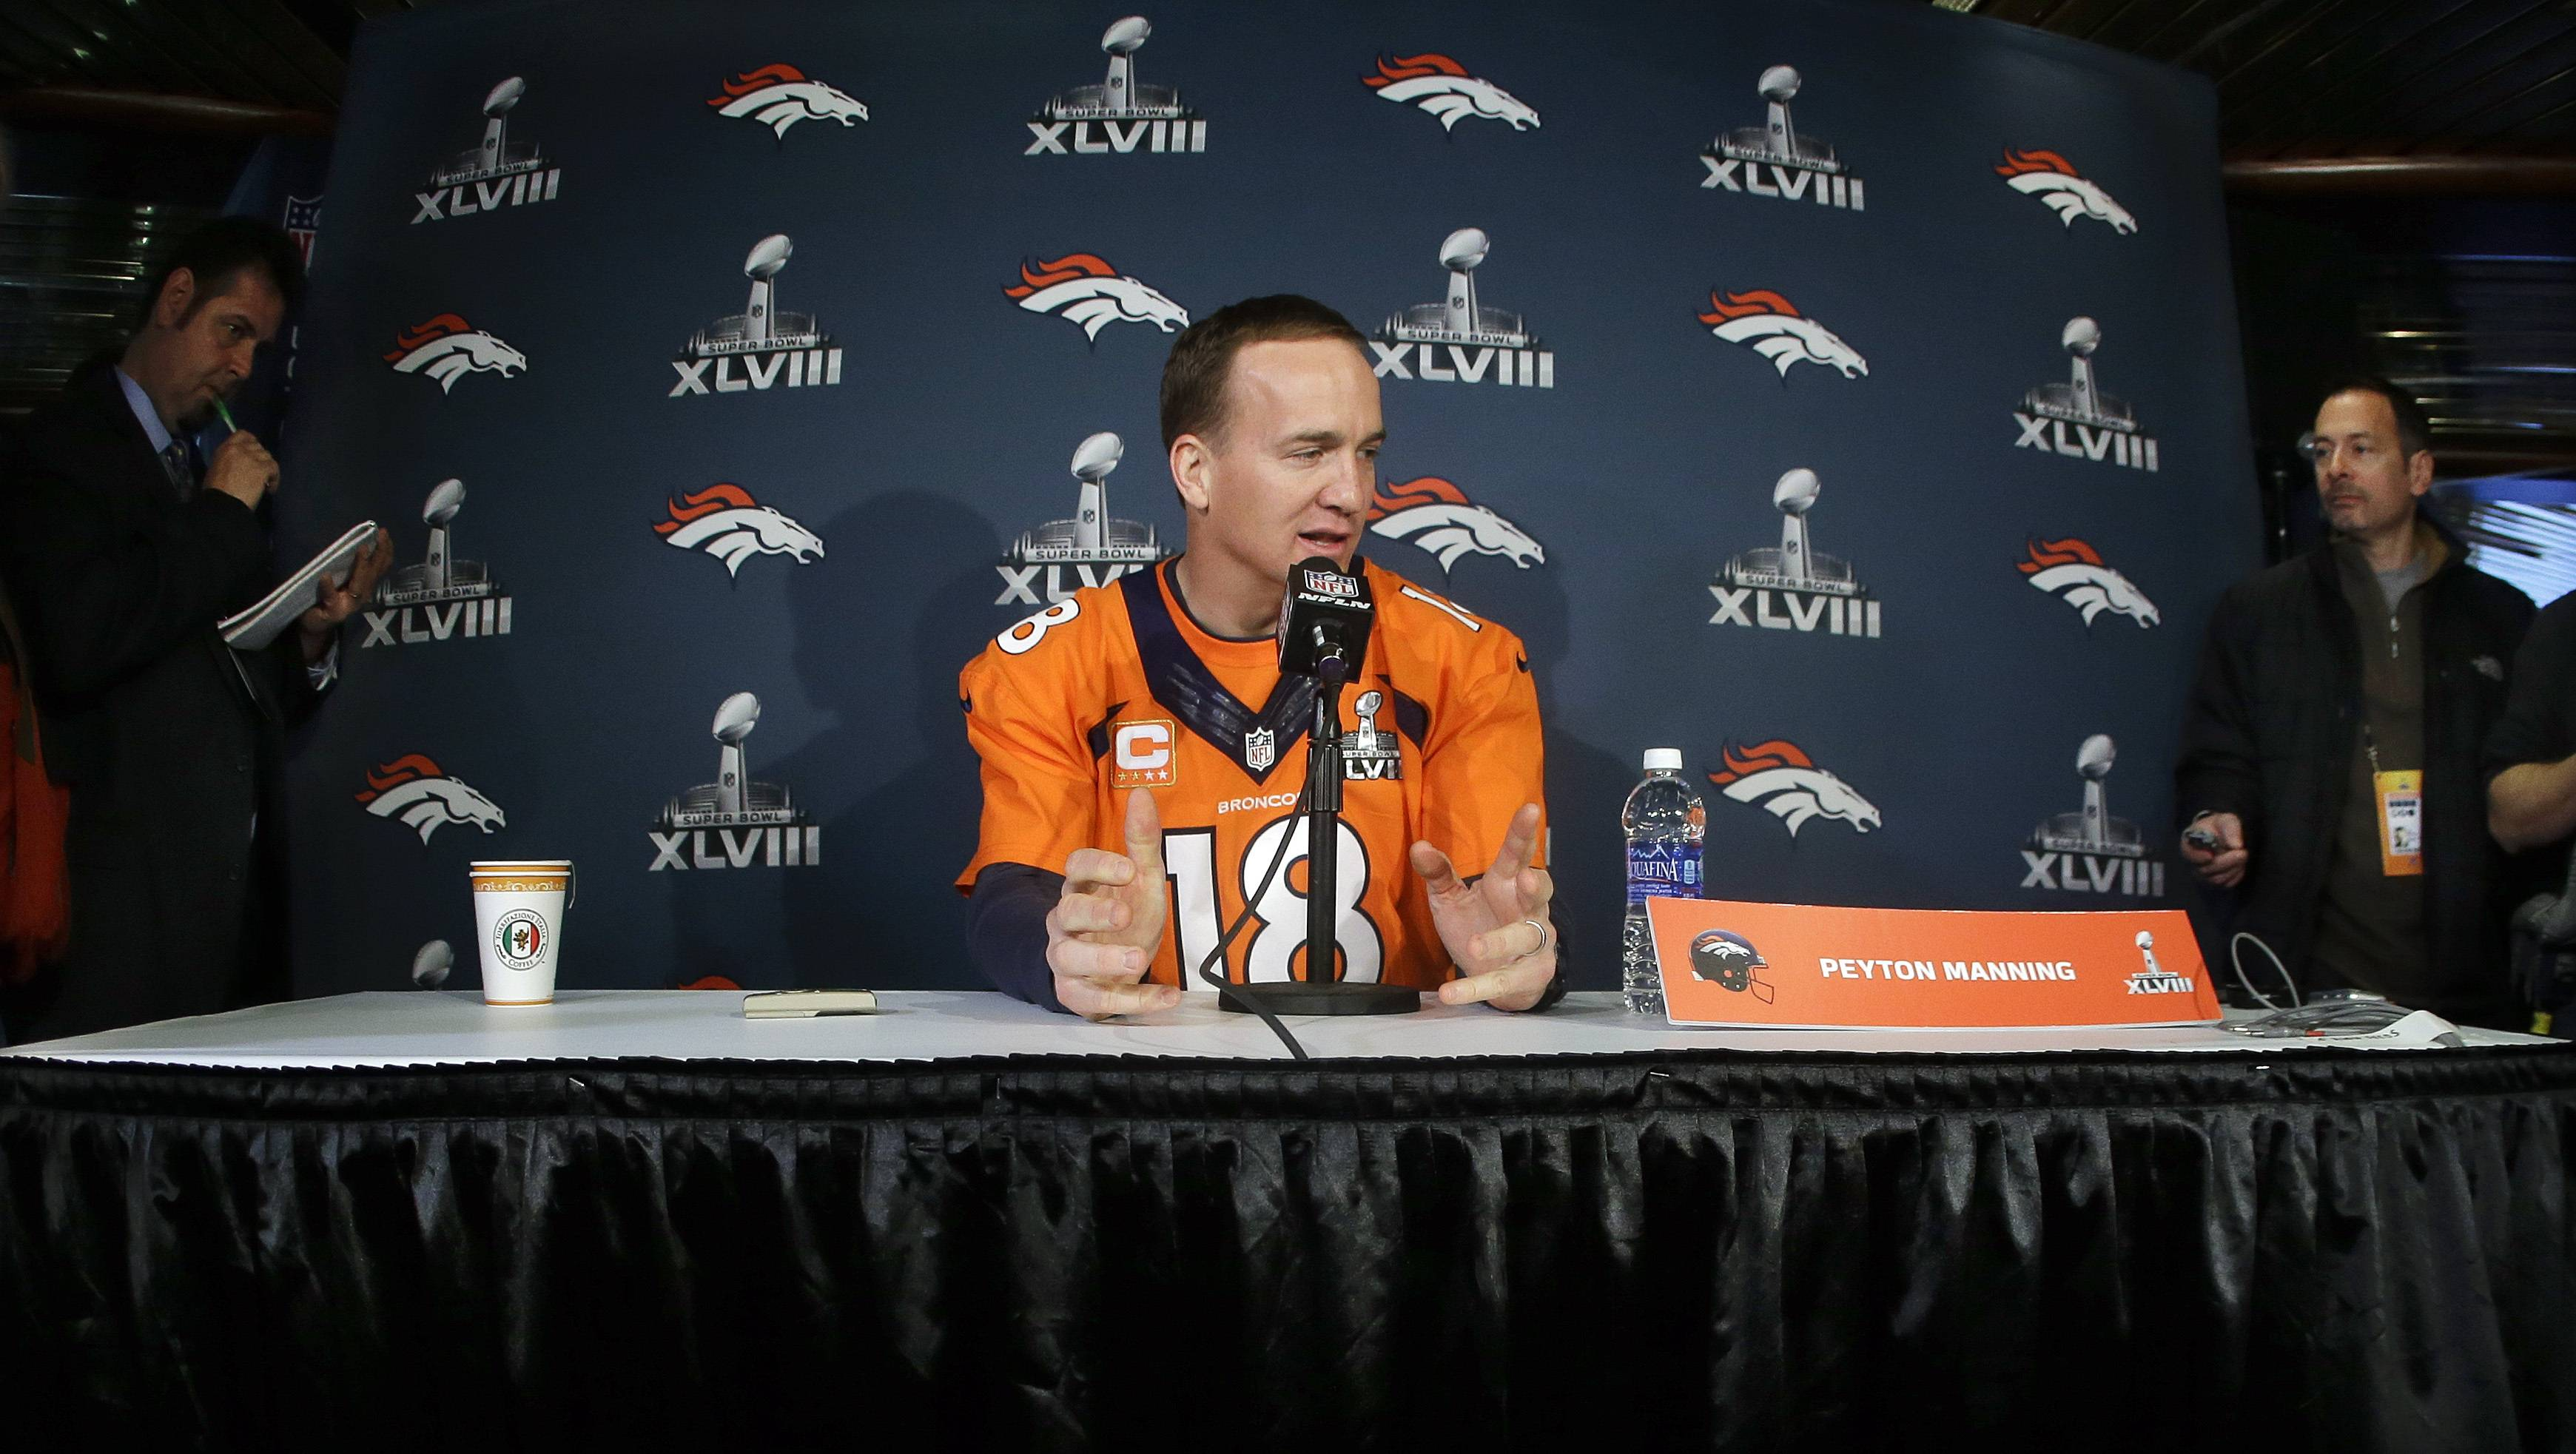 Denver Broncos quarterback Peyton Manning talks with reporters during a news conference Wednesday, Jan. 29, 2014, in Jersey City, N.J. The Broncos are scheduled to play the Seattle Seahawks in the NFL Super Bowl XLVIII football game Sunday, Feb. 2, in East Rutherford, N.J. (AP Photo/Mark Humphrey)Associated Press